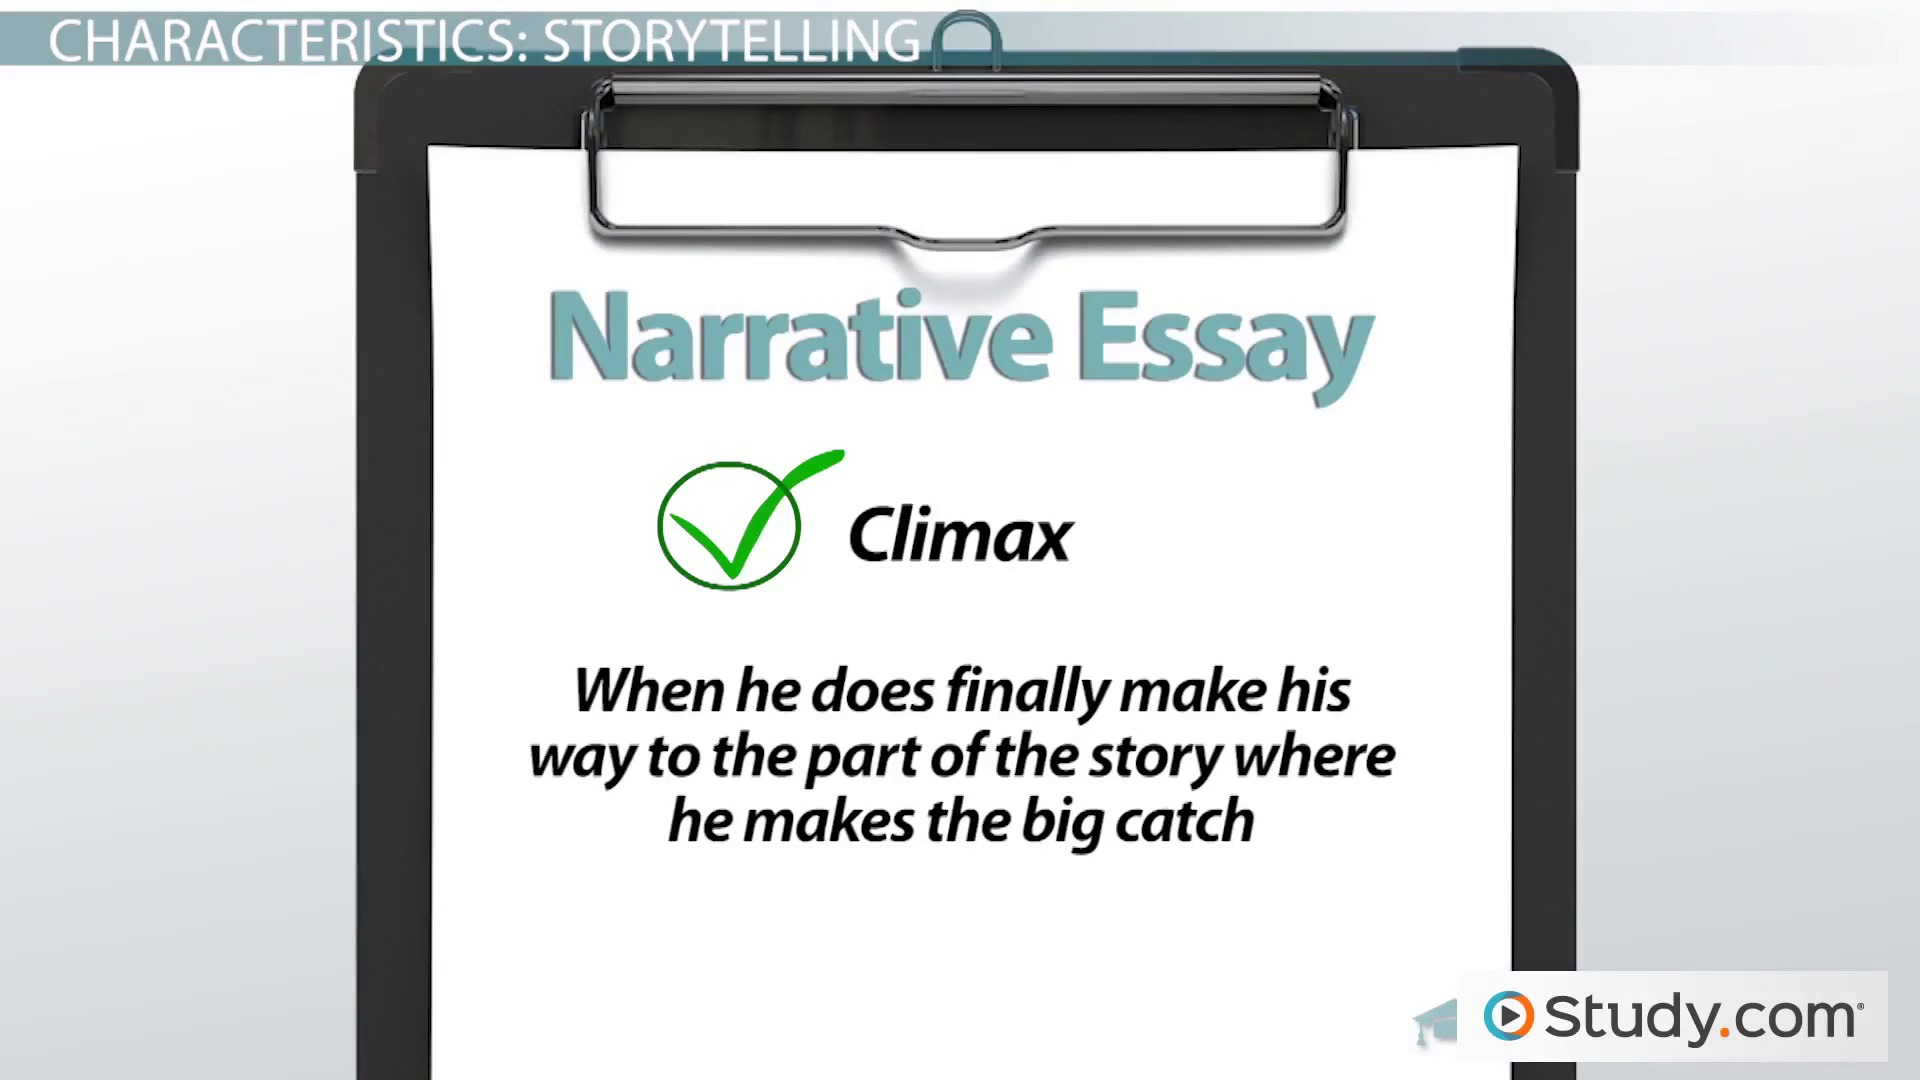 Where can i find an online tutor for narrative essays right now for free?